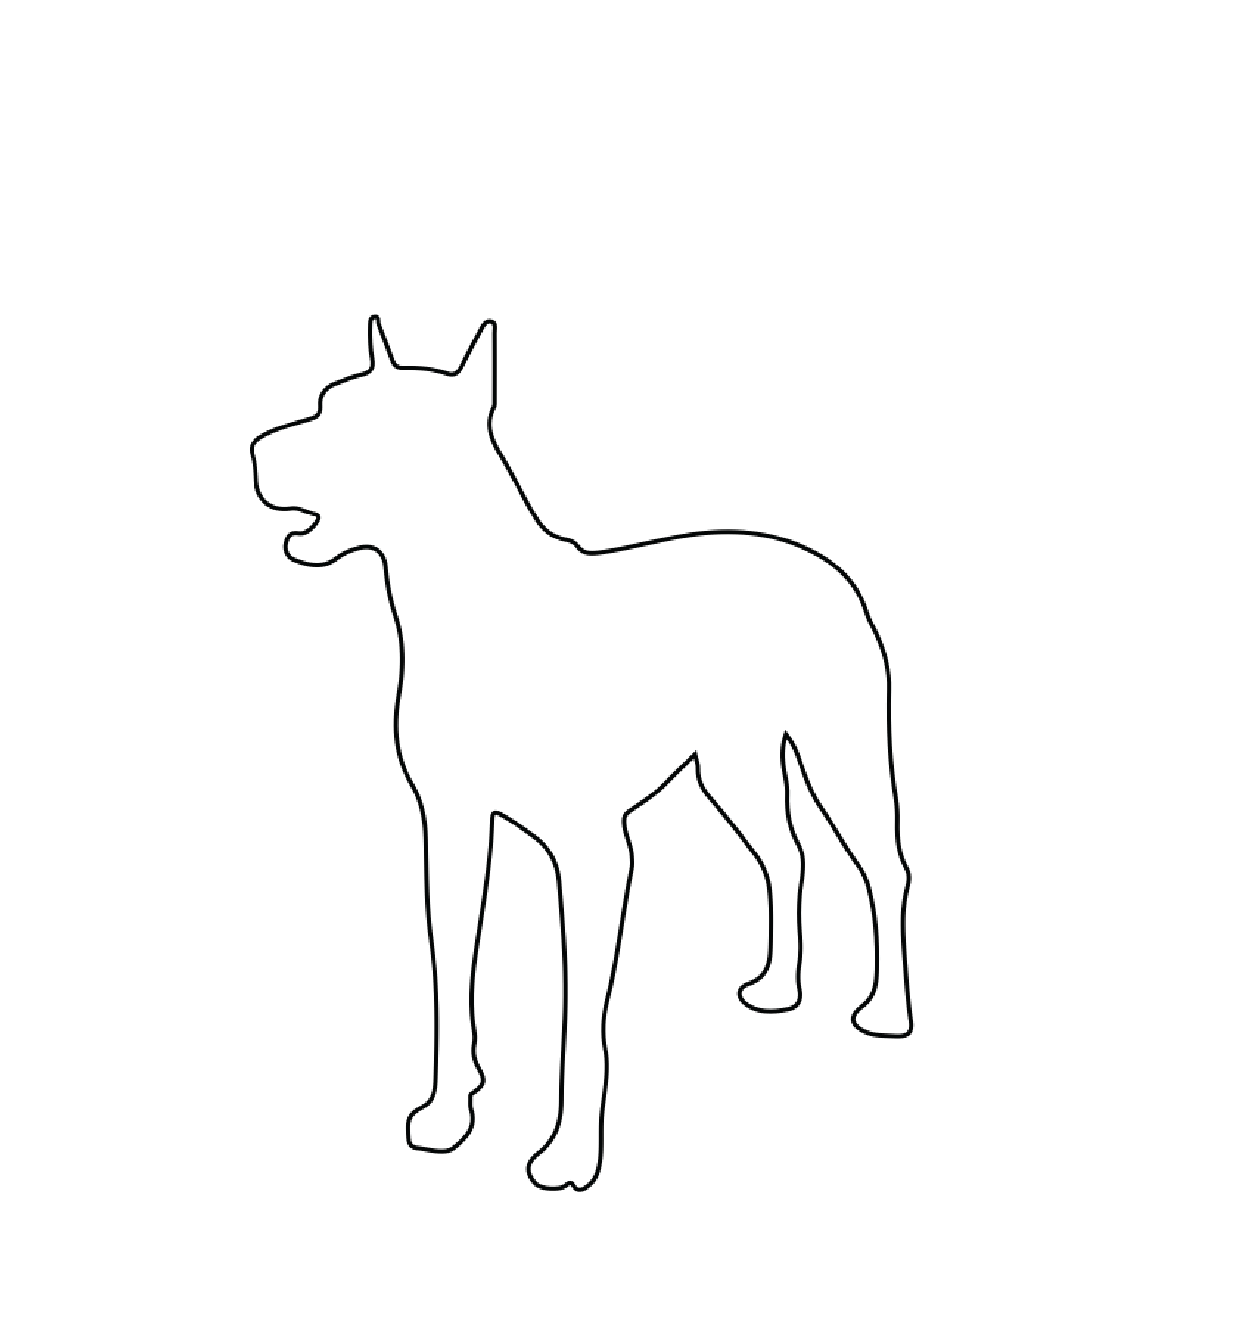 A thin black outline of a dog on a white background.